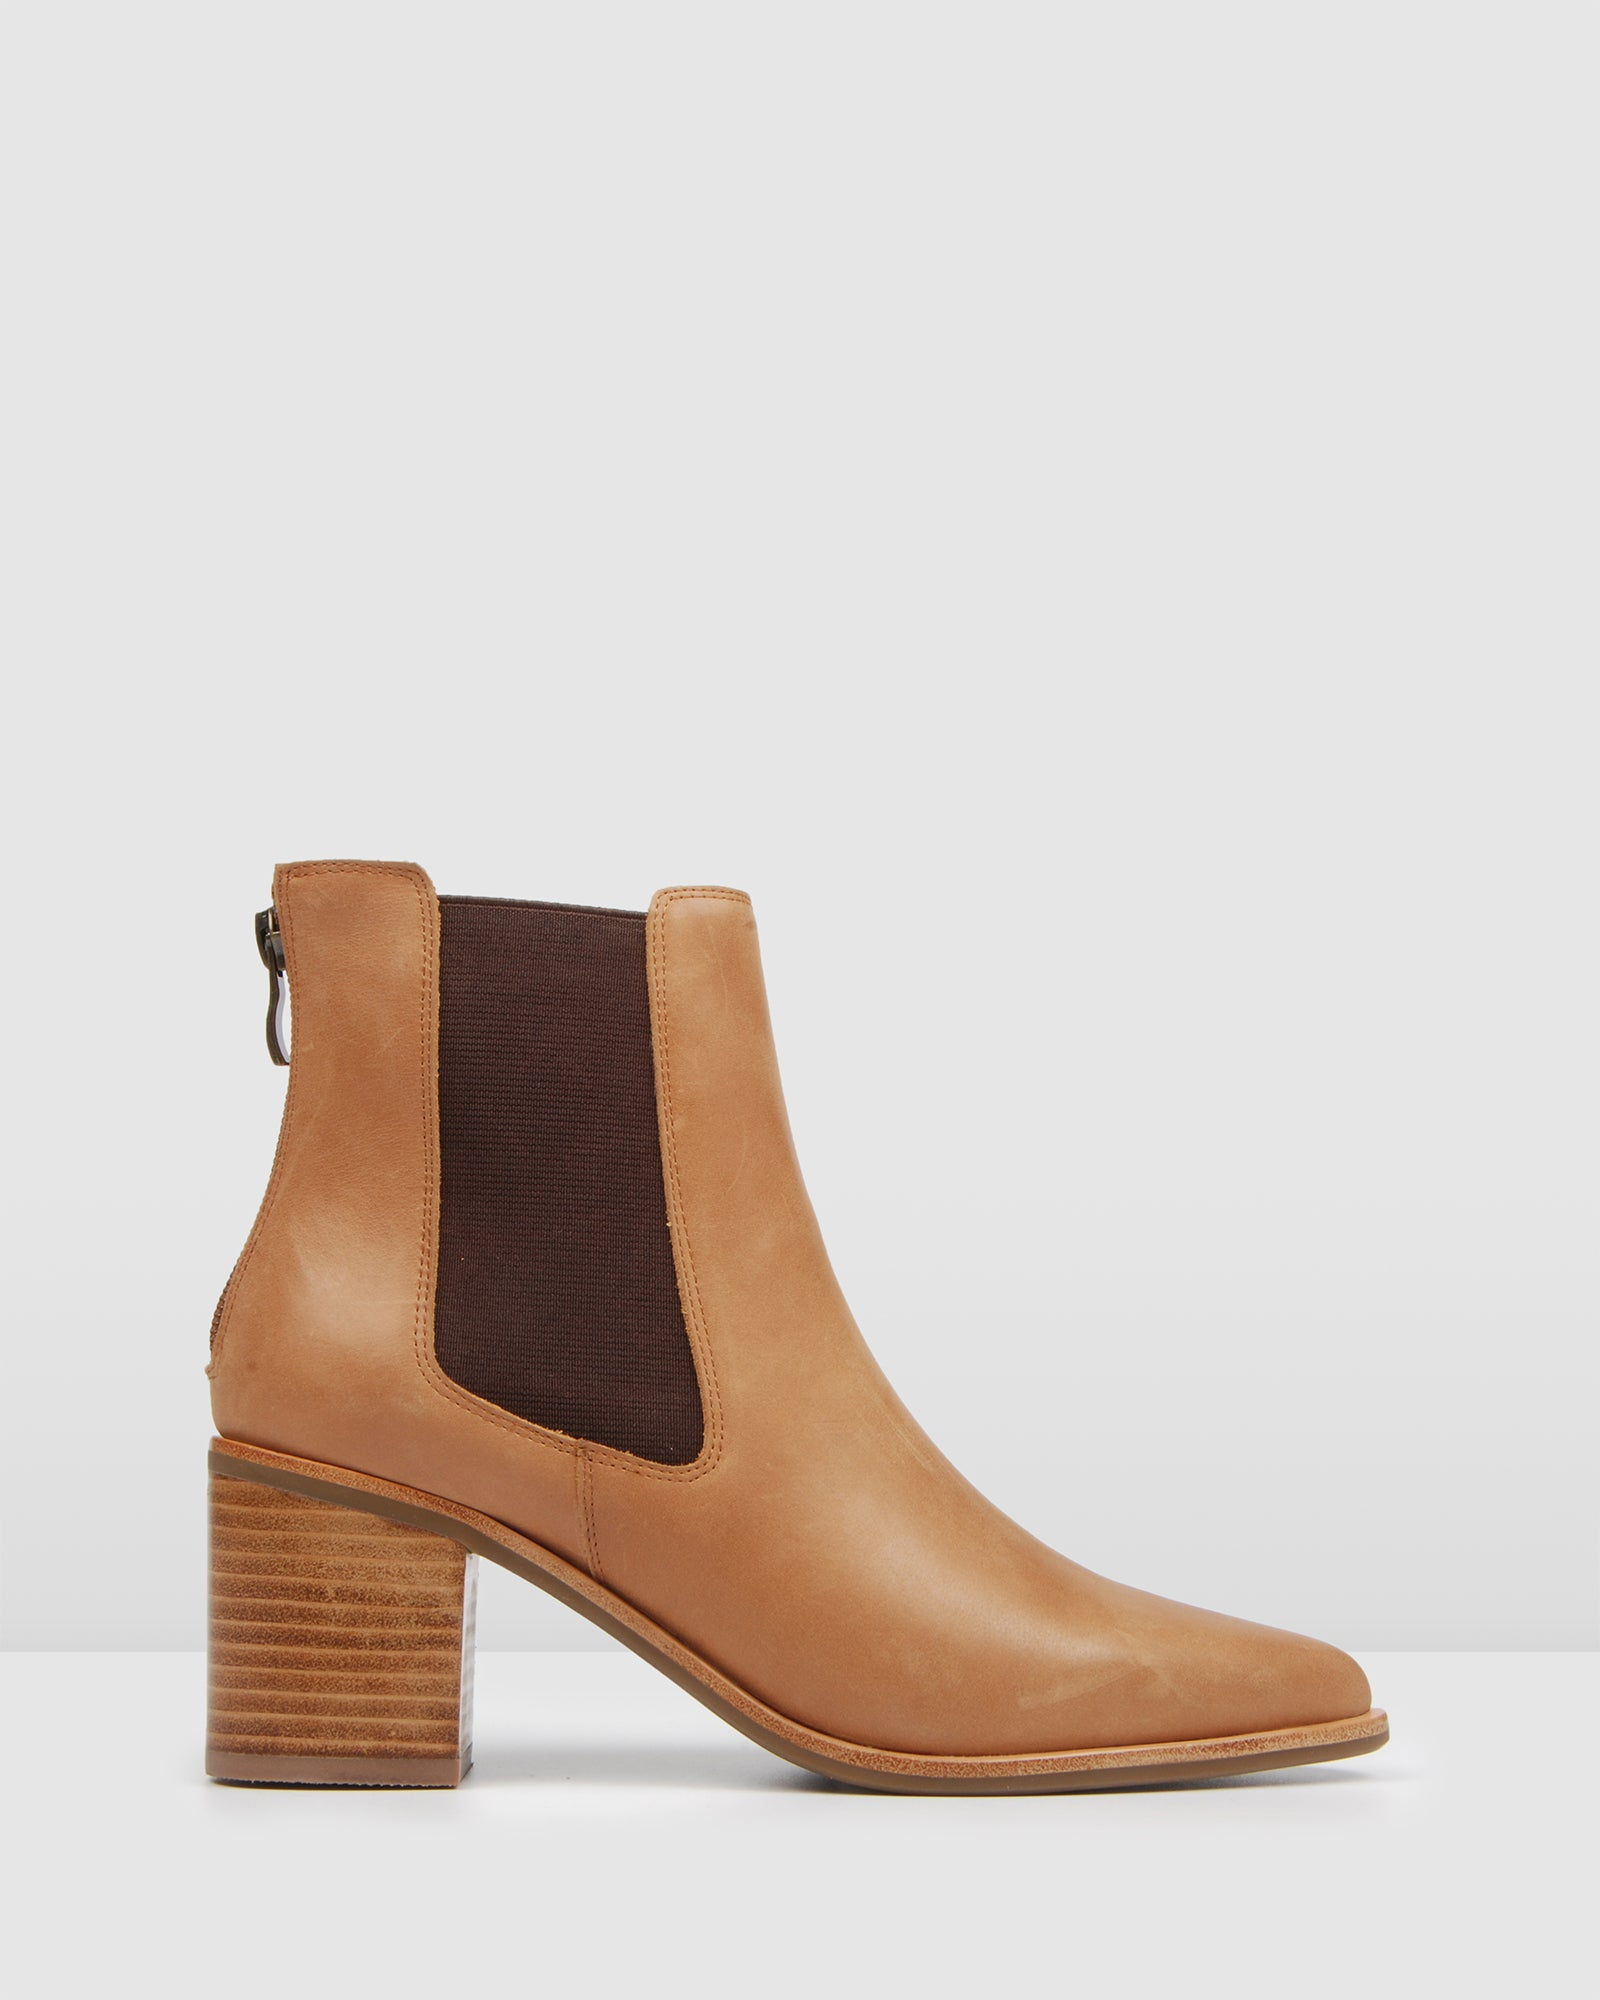 ALLURE MID ANKLE BOOTS CHOCOLATE LEATHER